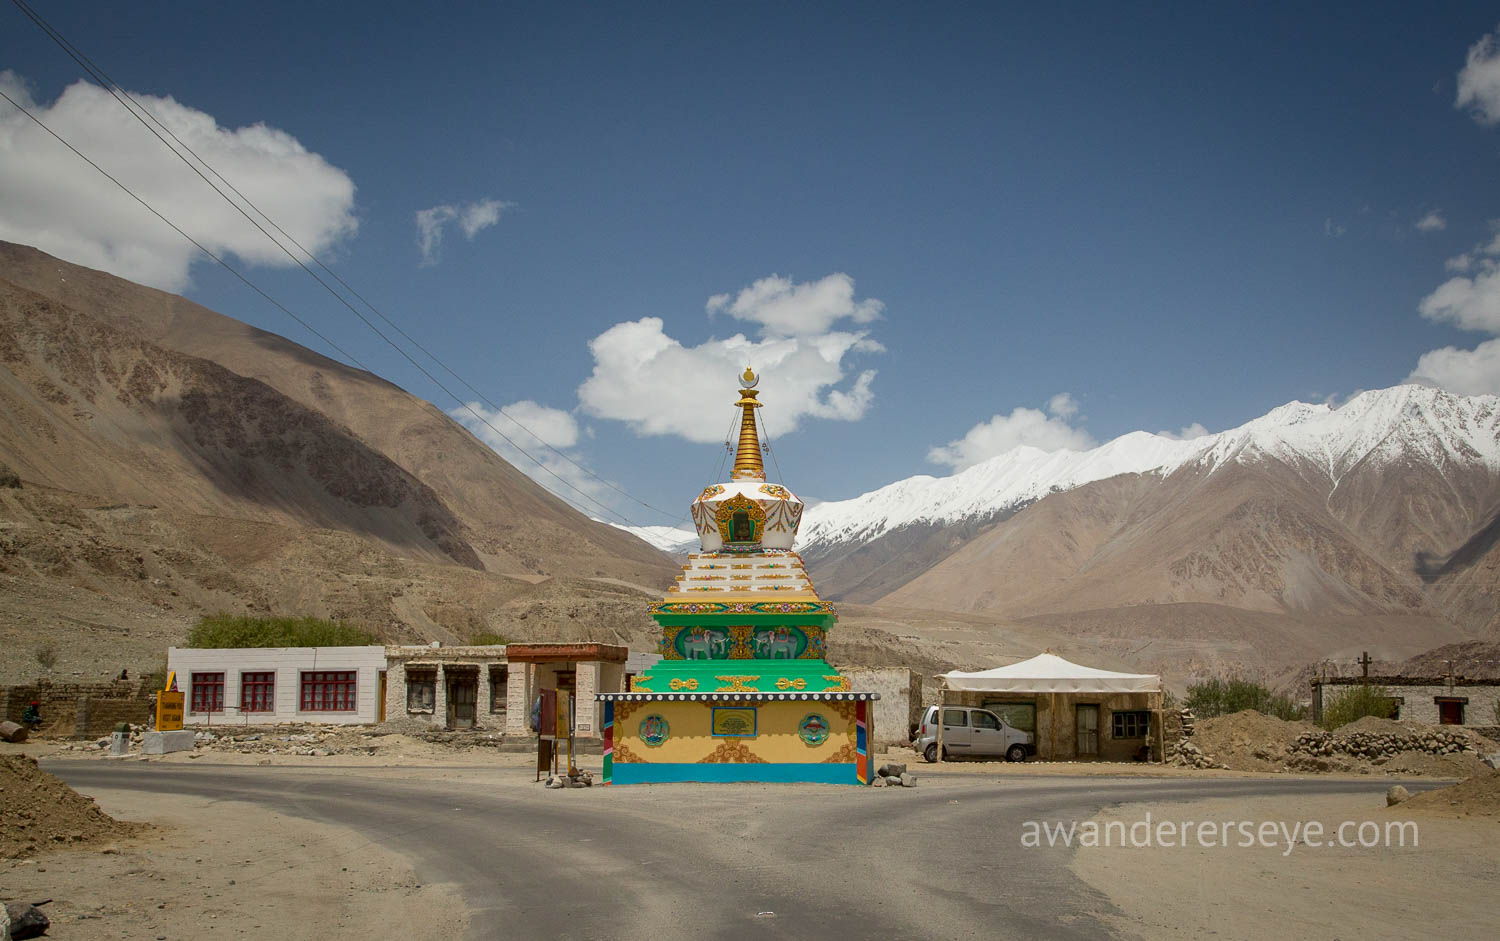 A roadside Stupa in the mountains of Ladakh.